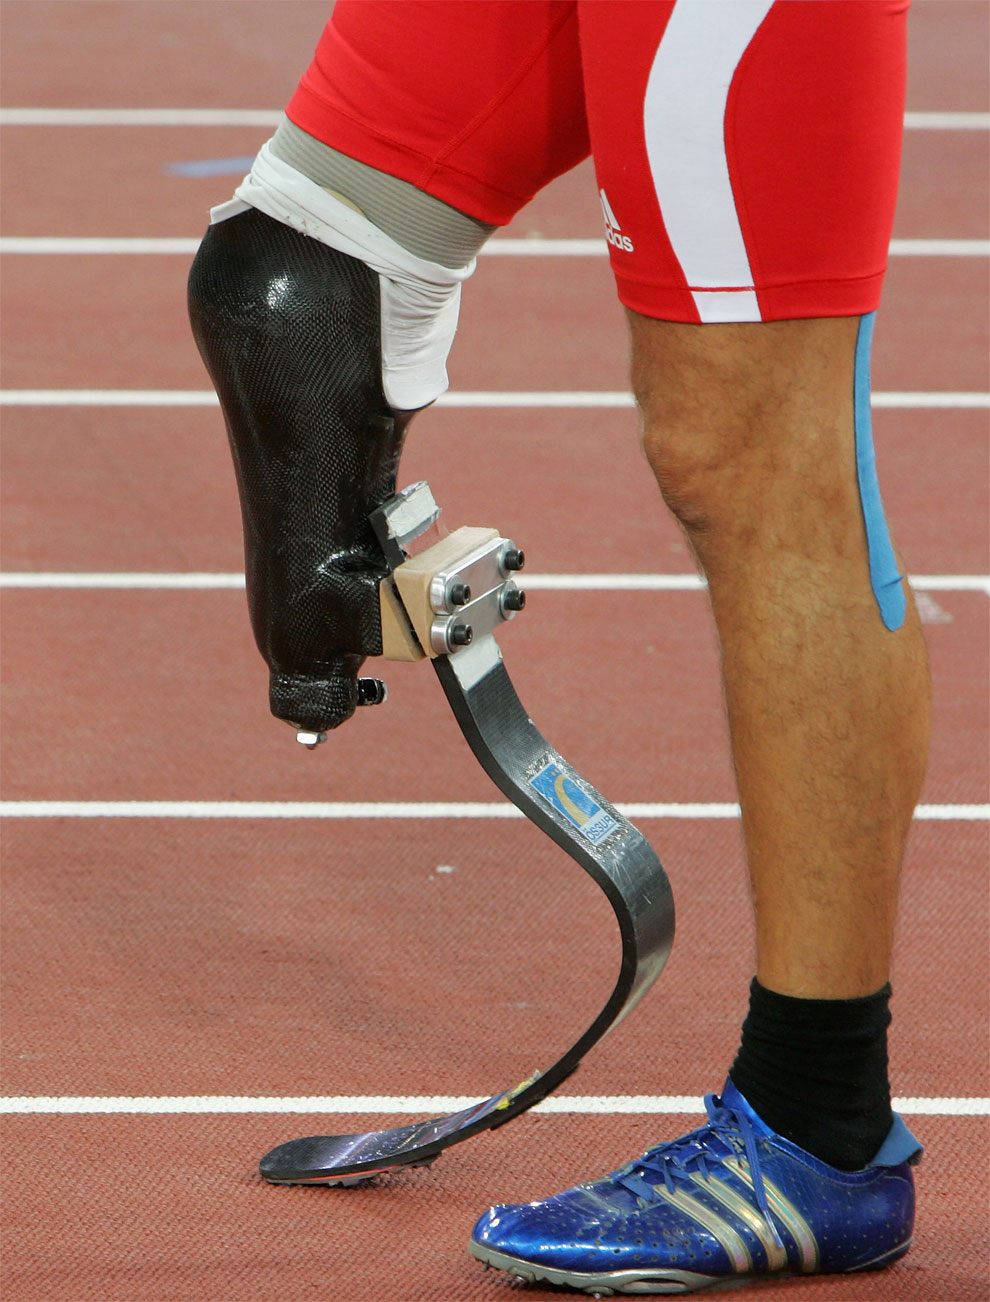 180 Applications of Bionics in Sport